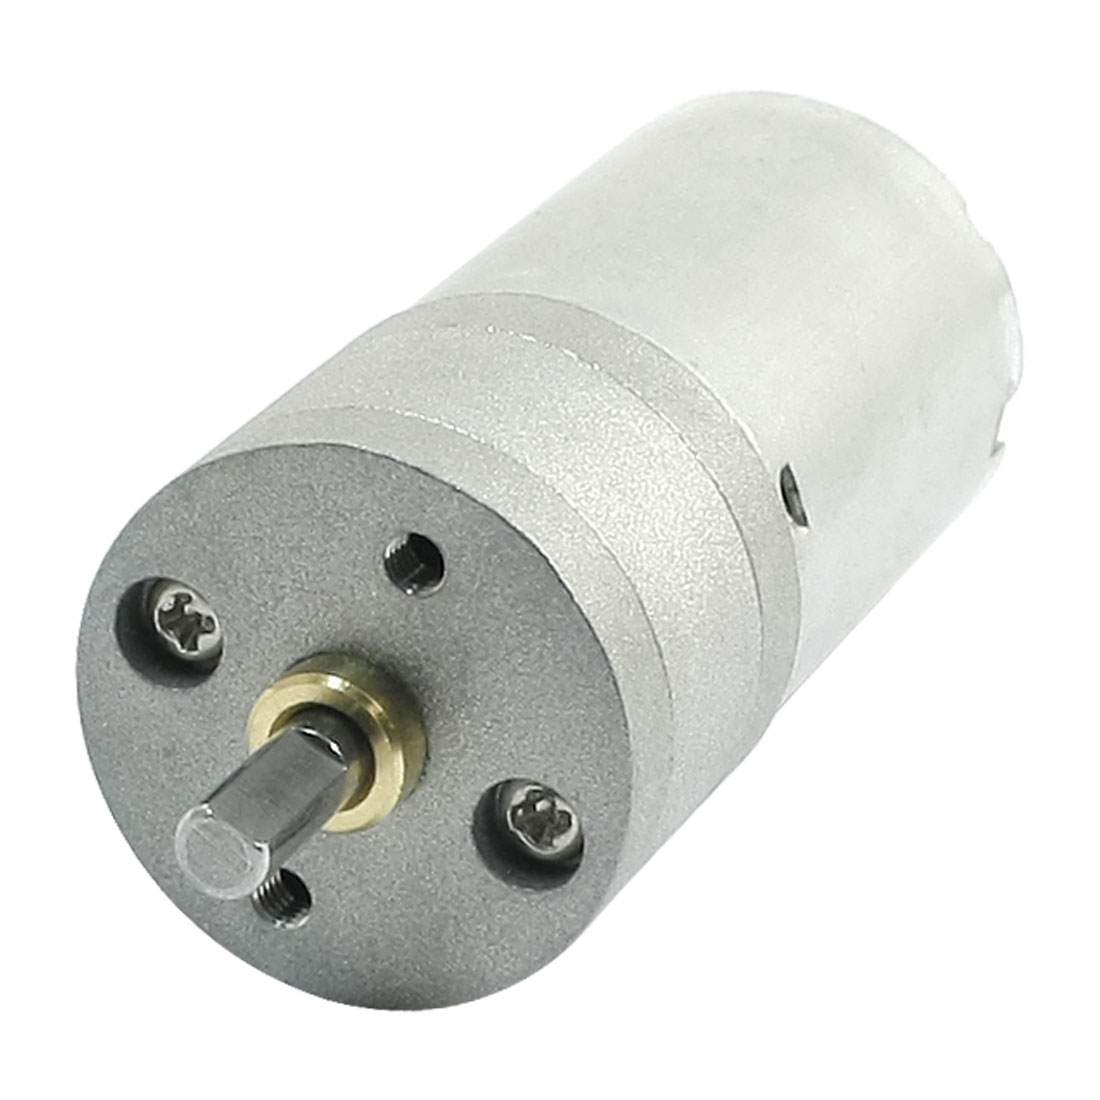 GA25-370 DC 24V 178RPM 2 Pole Solder Cylindrical Speed Reduce Gear Motor